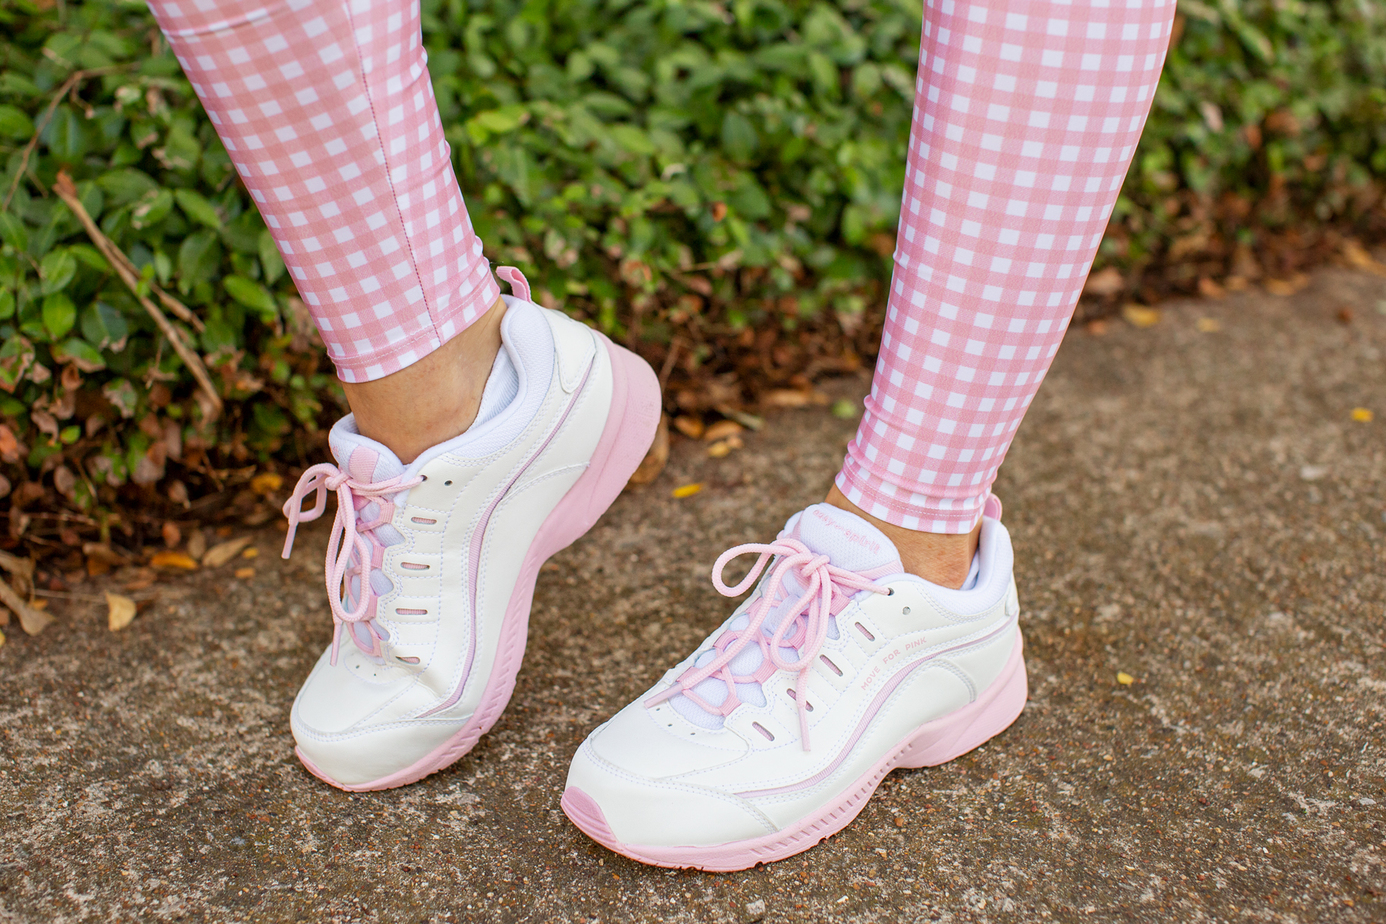 womans feet in pink and white easy spirit tennis shoes